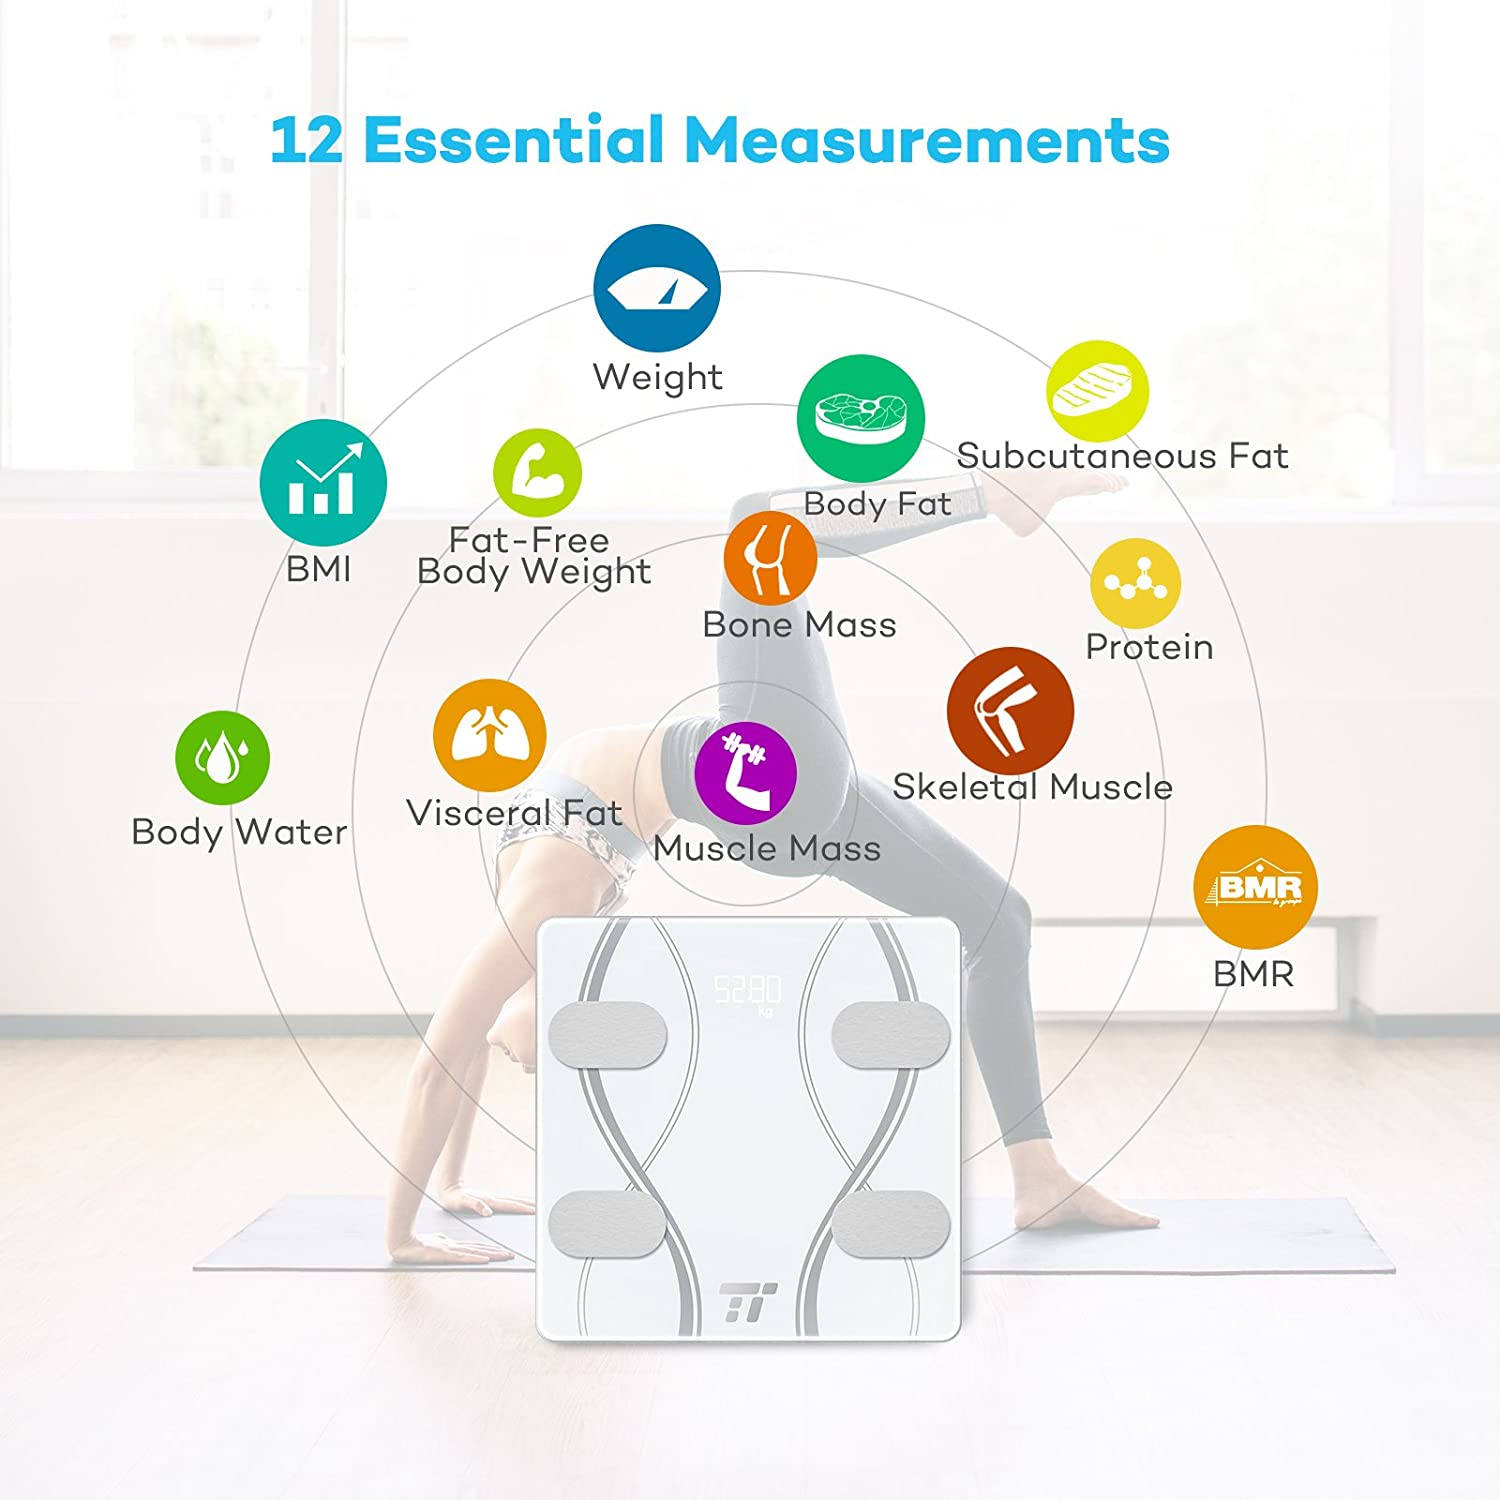 TaoTronics TT-FS001 Body Fat Scale Bluetooth Body Composition Scale FDA Approved Bathroom Digital Wireless Weight Scale Measures 12 Health Measurements BMI Scale Body Composition Analyzer with Smart App